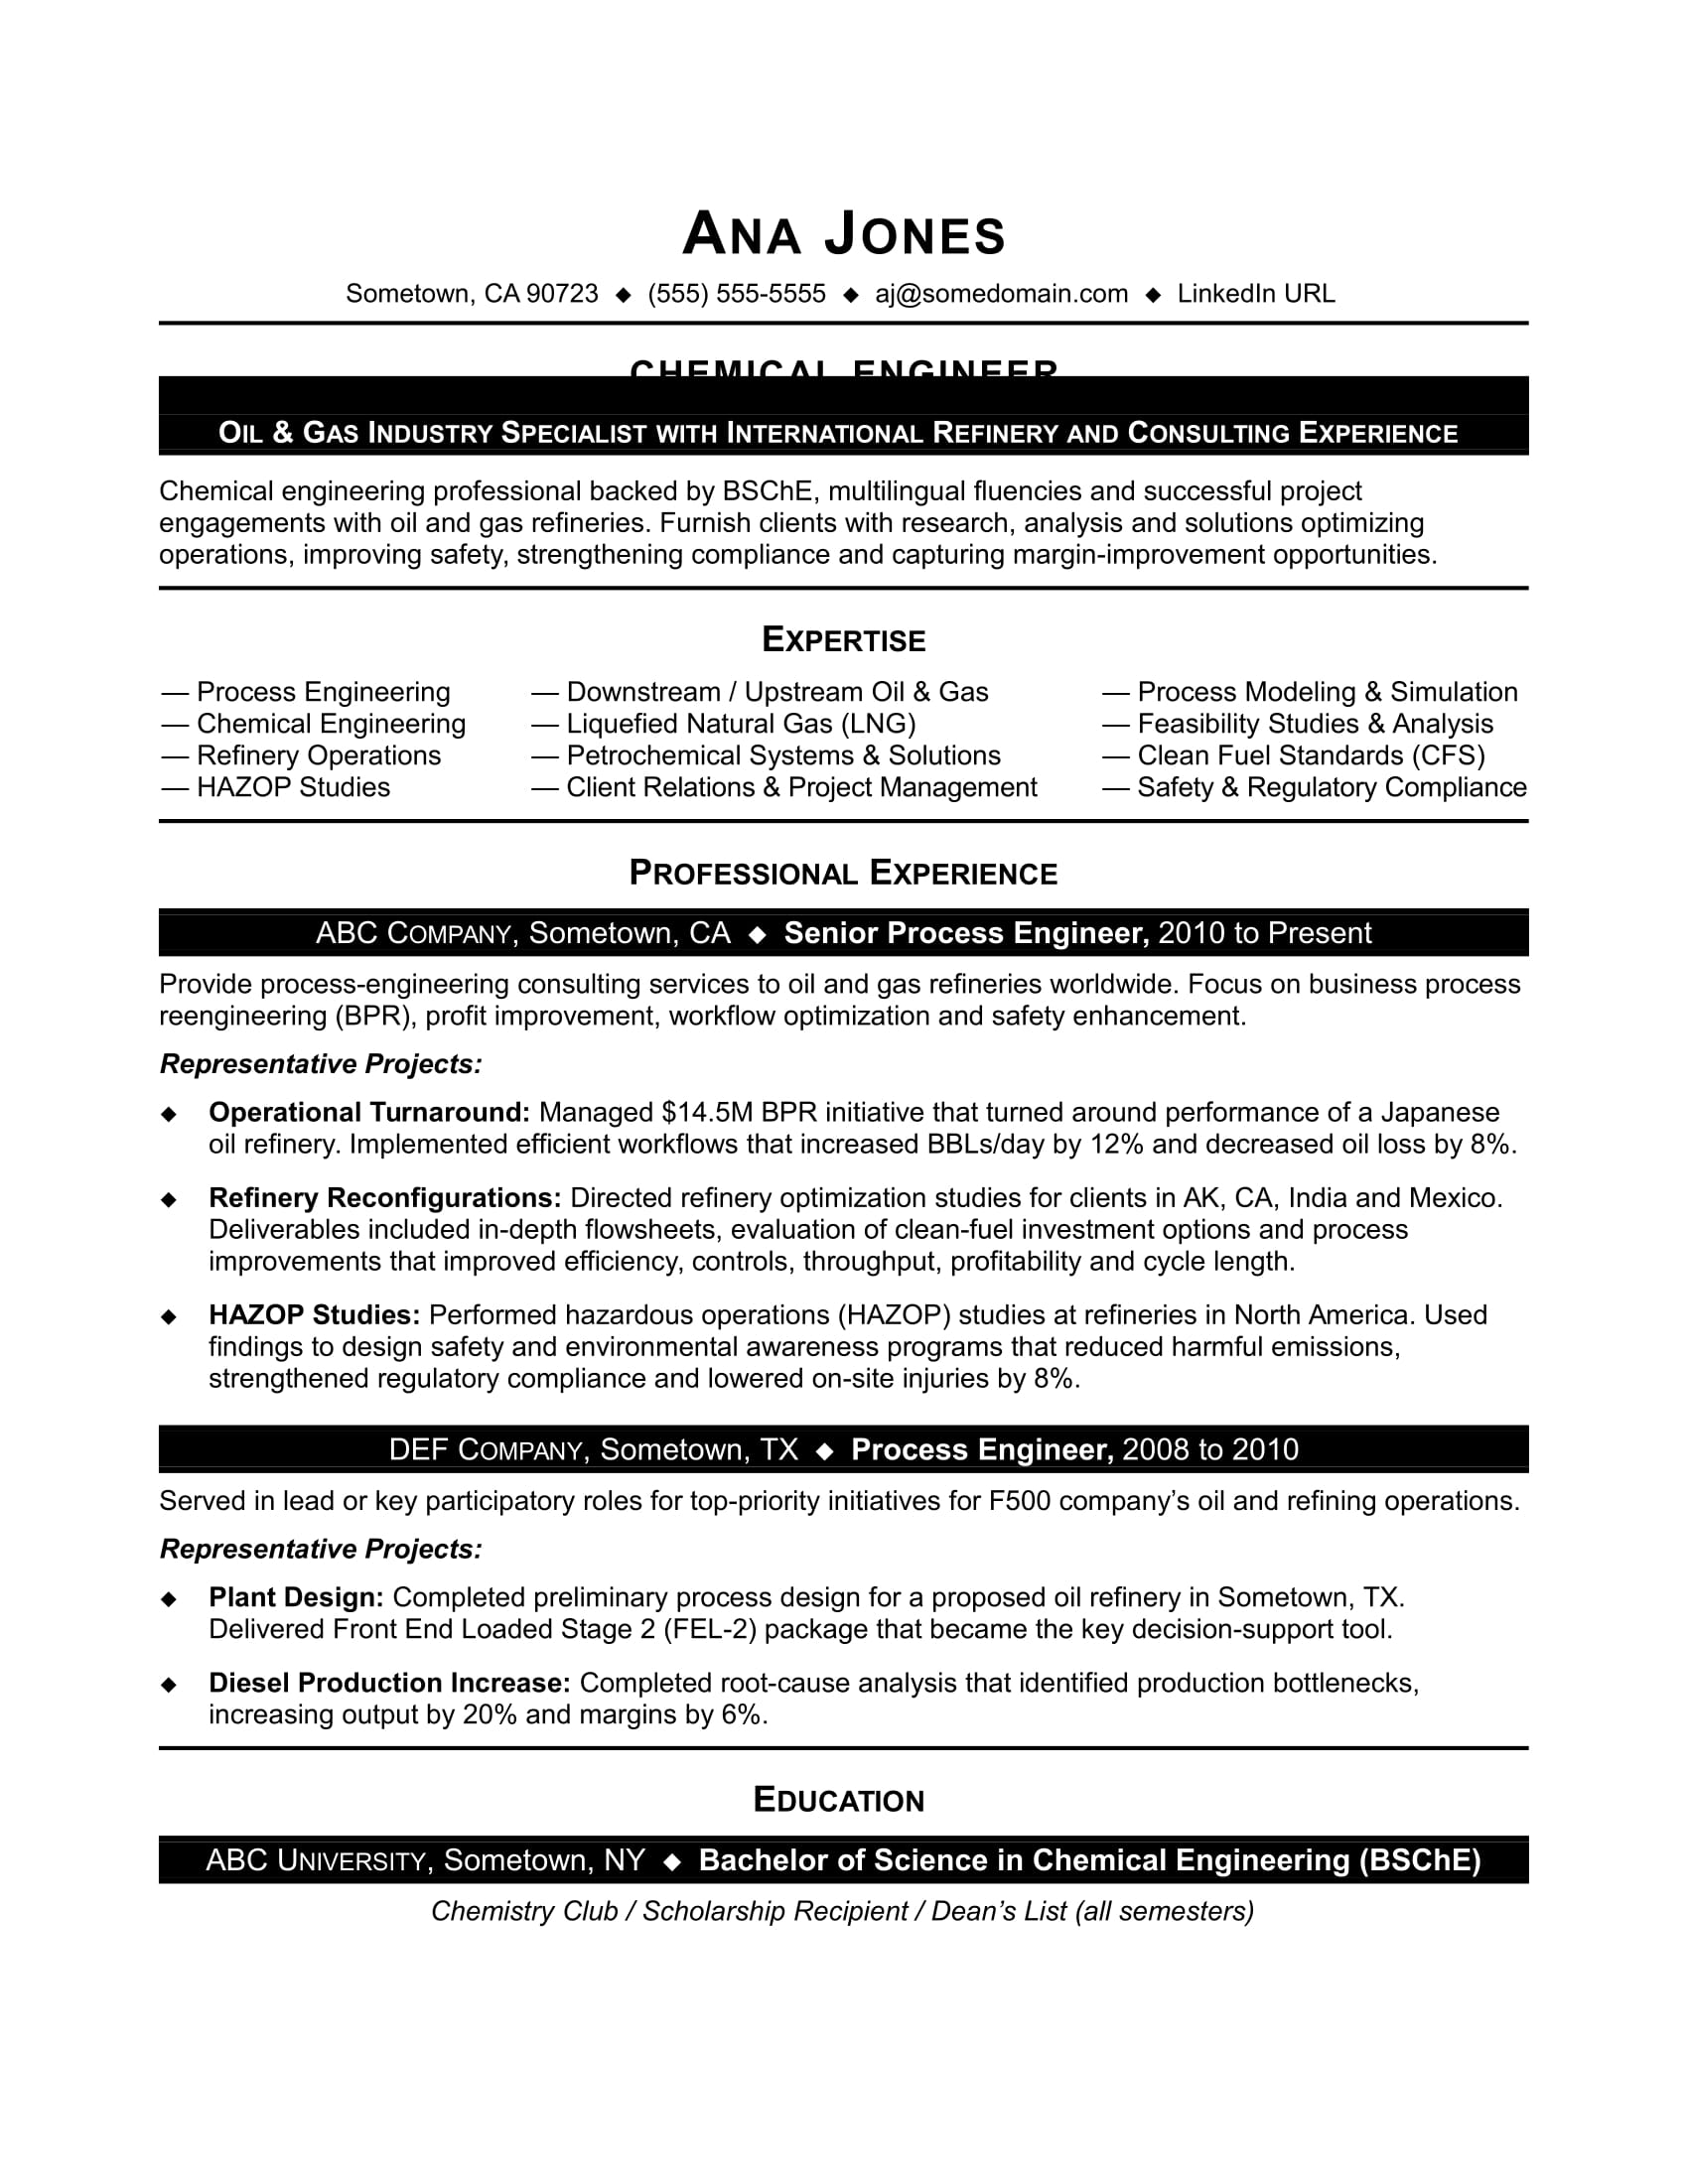 sample resume for entry level chemical engineer monster business initiatives consultant Resume Business Initiatives Consultant Resume